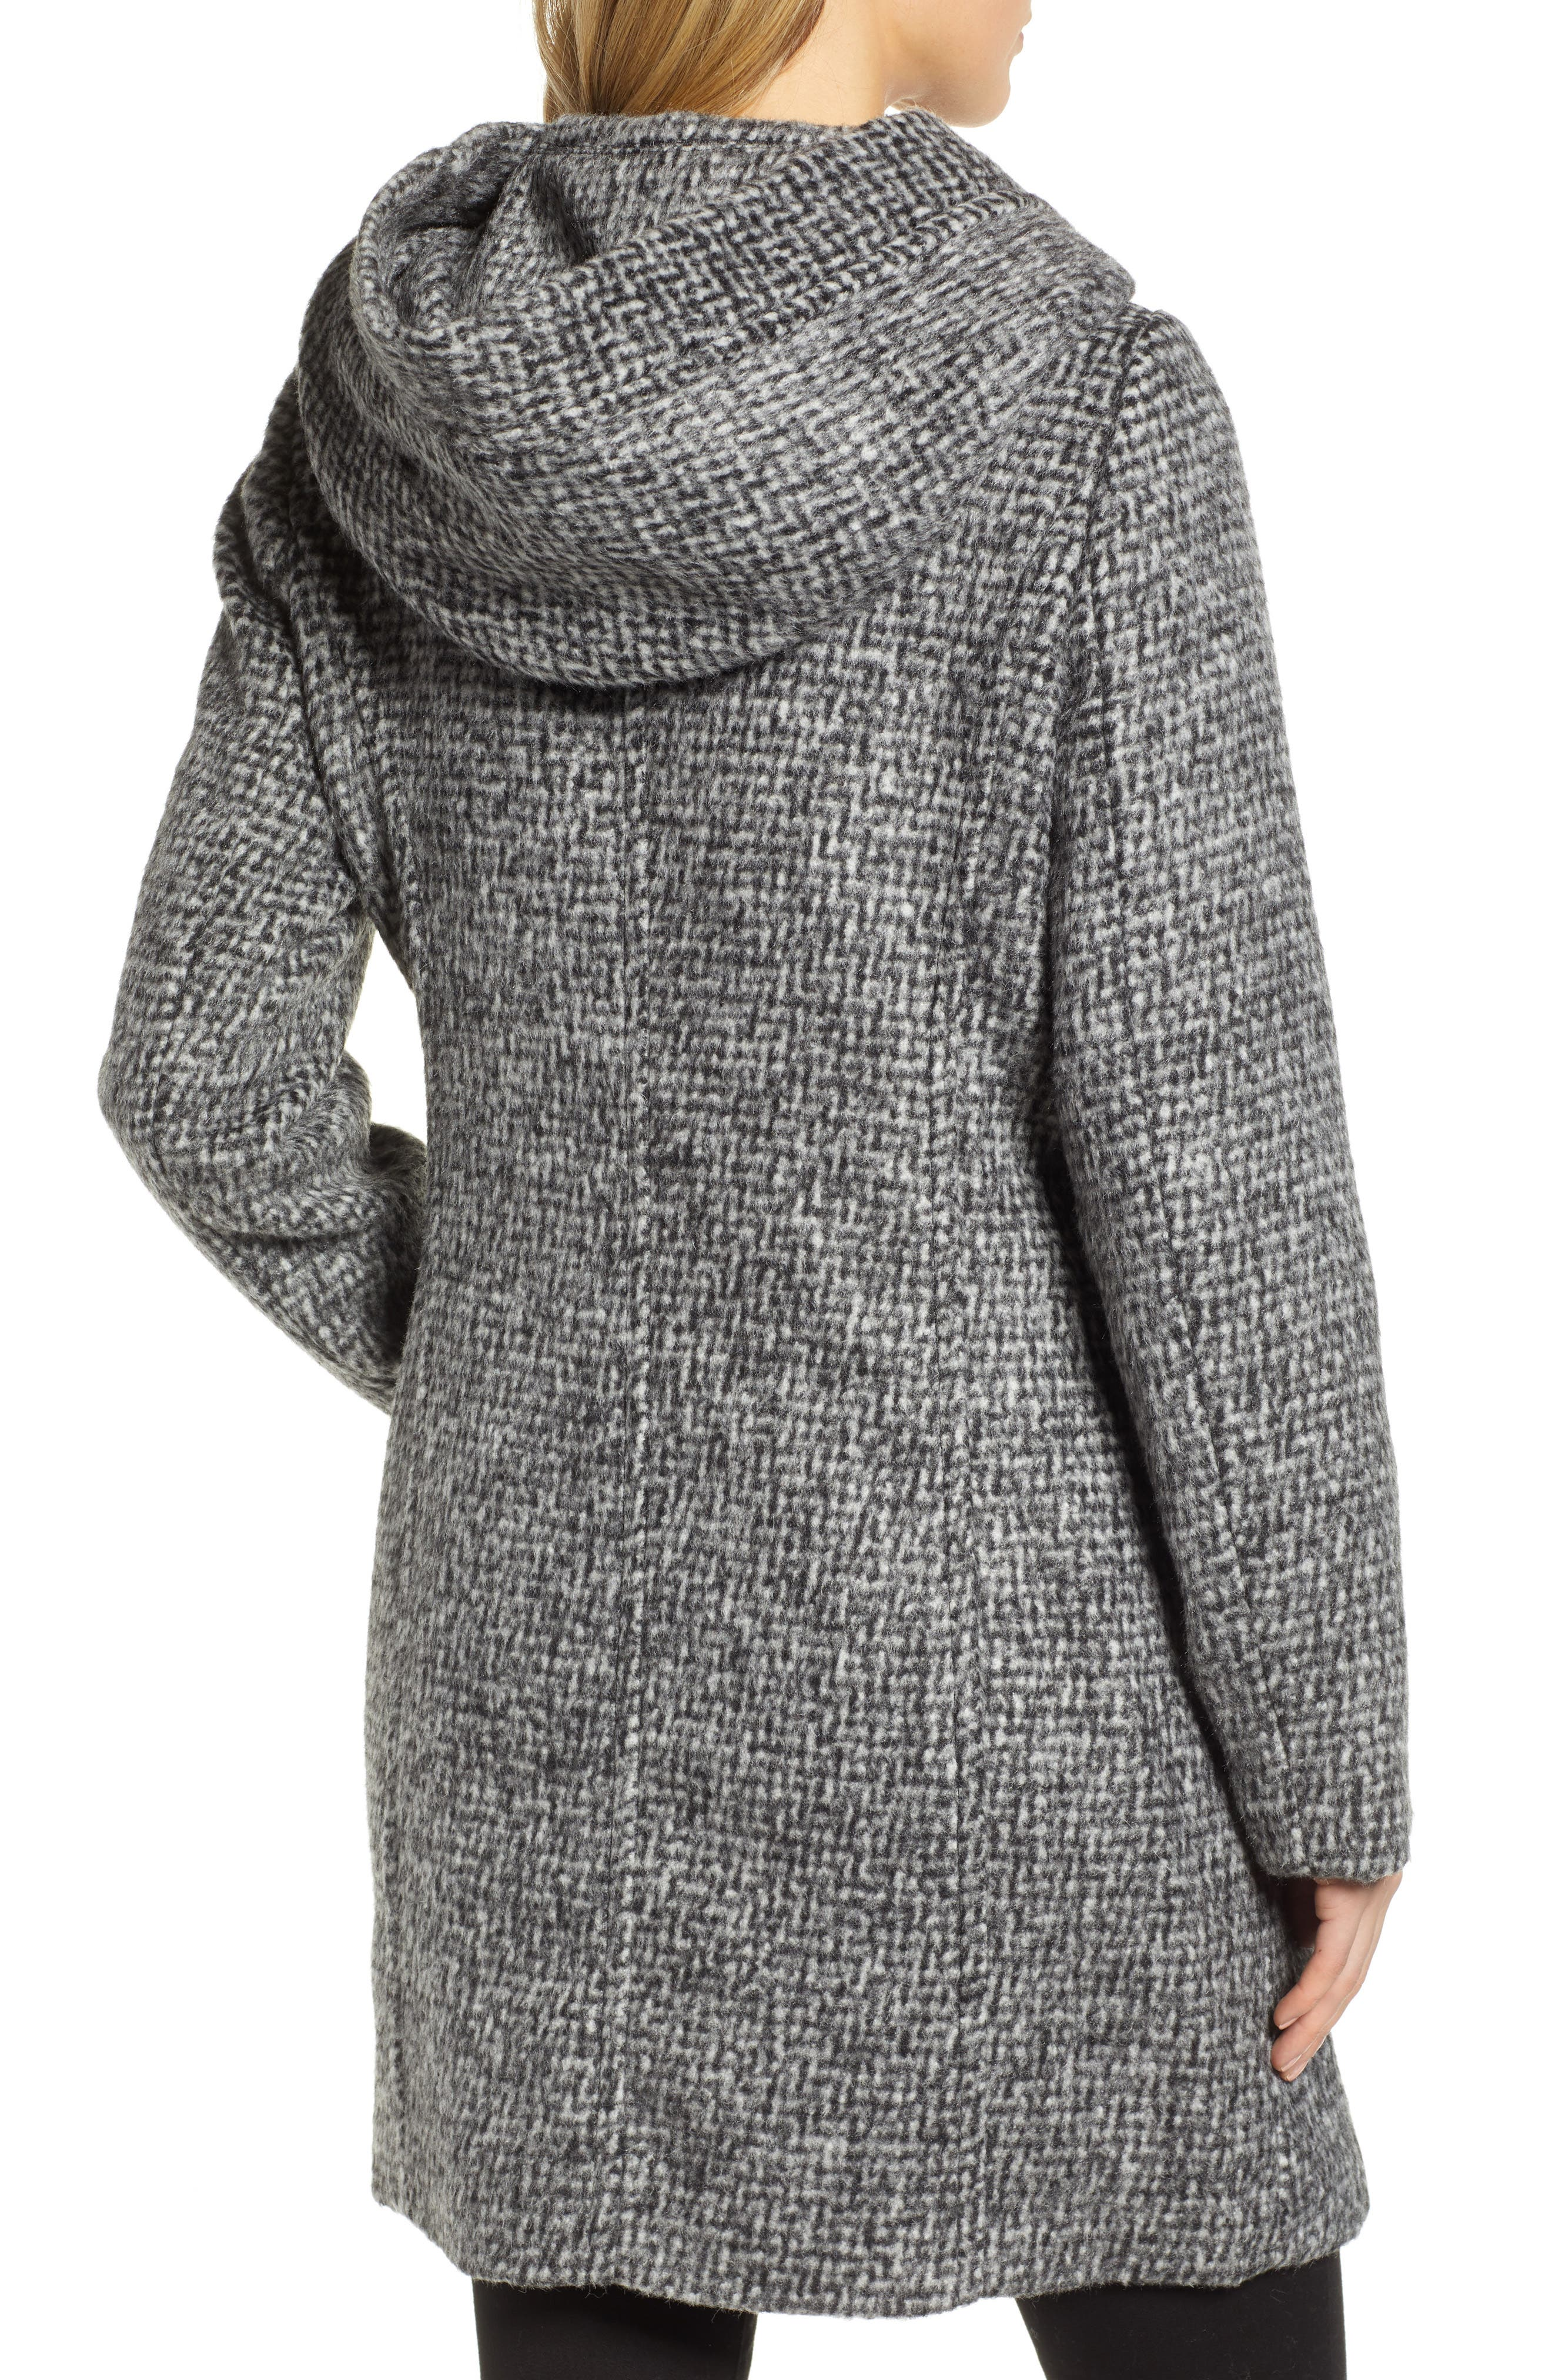 Fuzzy Houndstooth Coat,                             Alternate thumbnail 2, color,                             BLACK/ WHITE